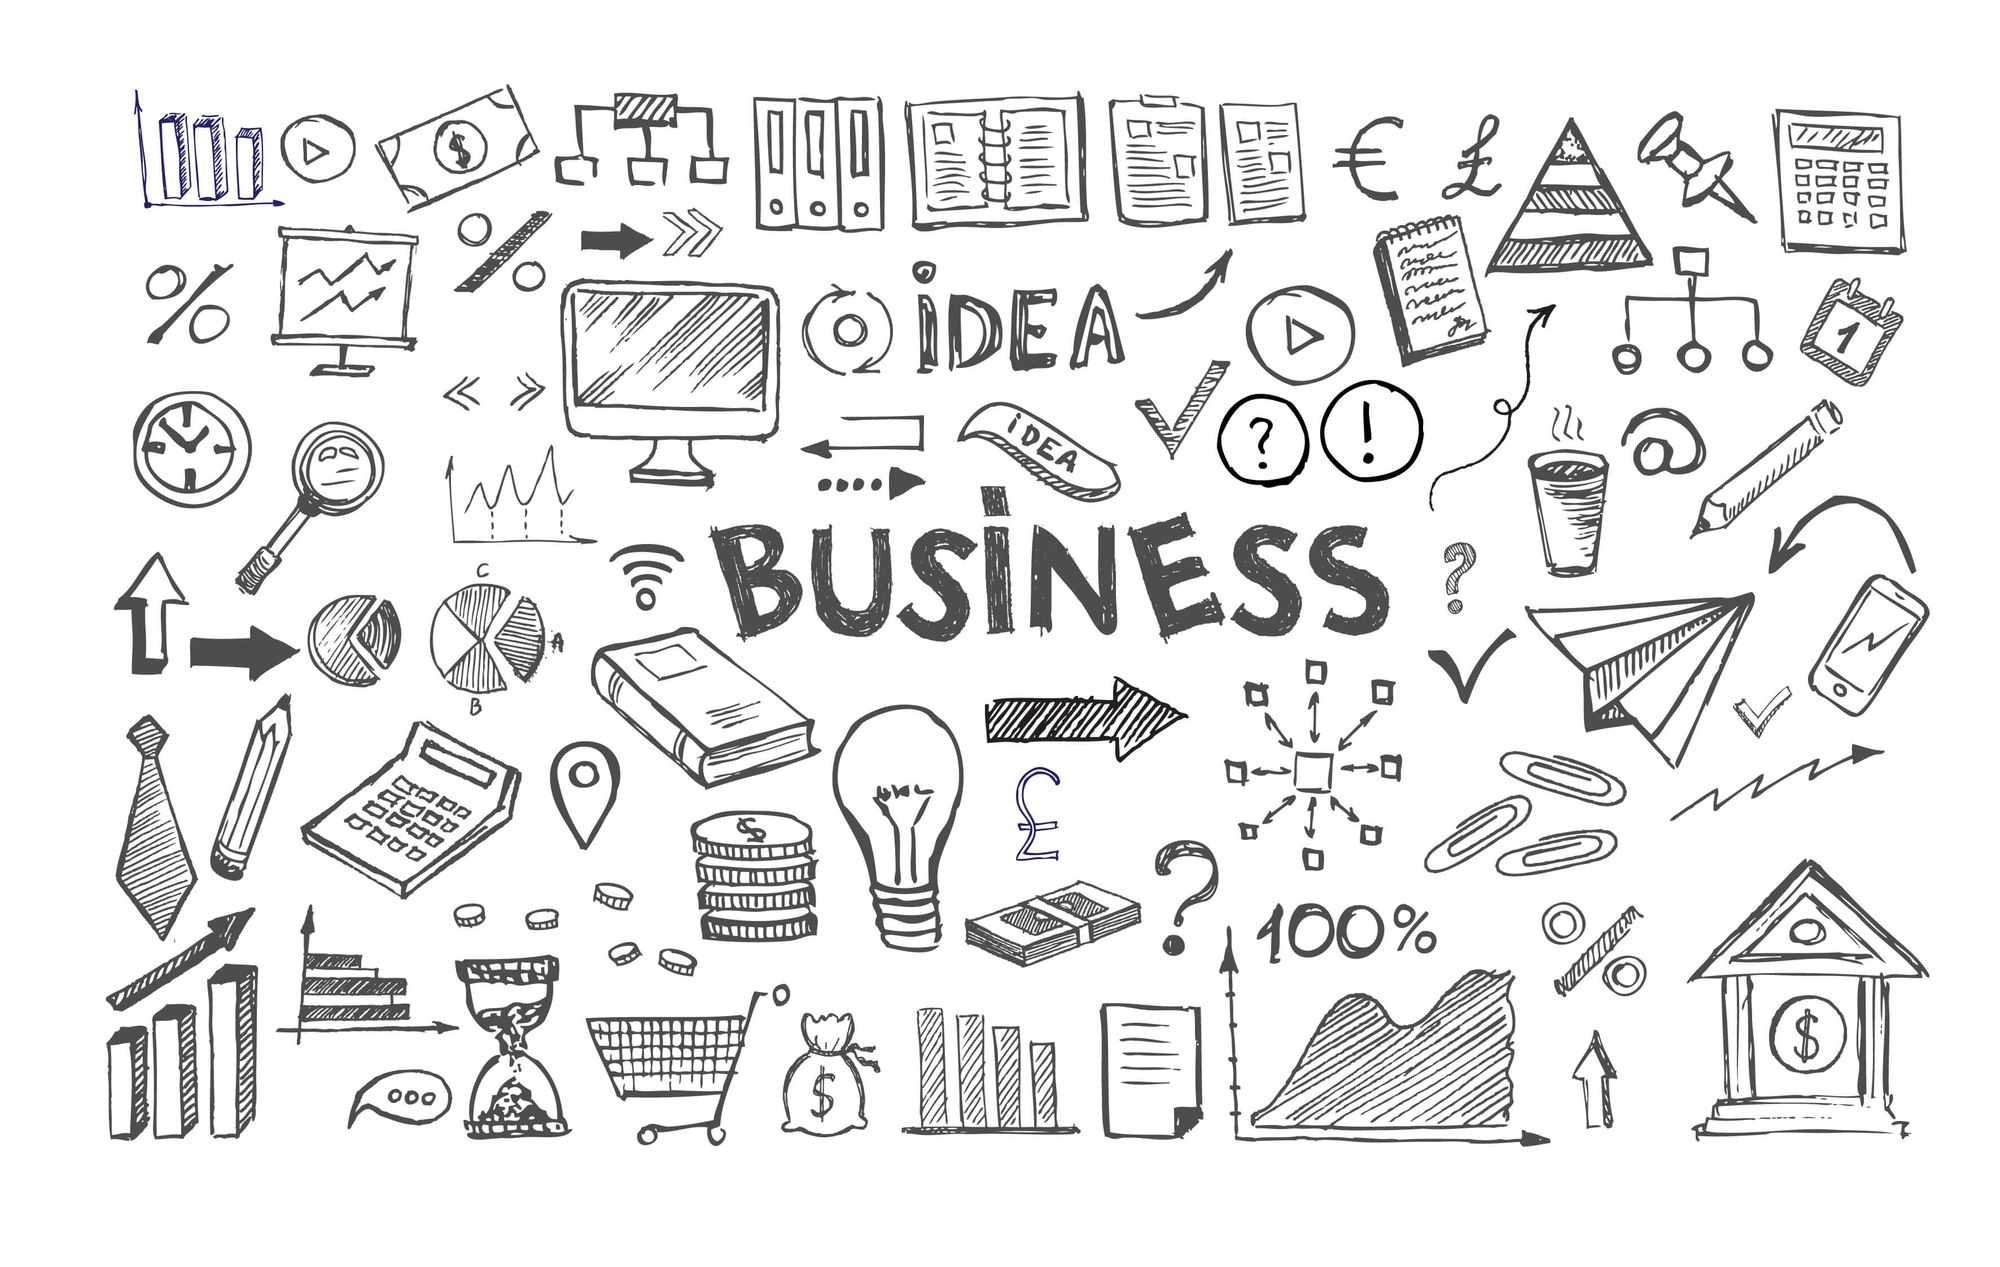 What Are the Business Ideas I Can Look at If I Am an MBA Graduate?